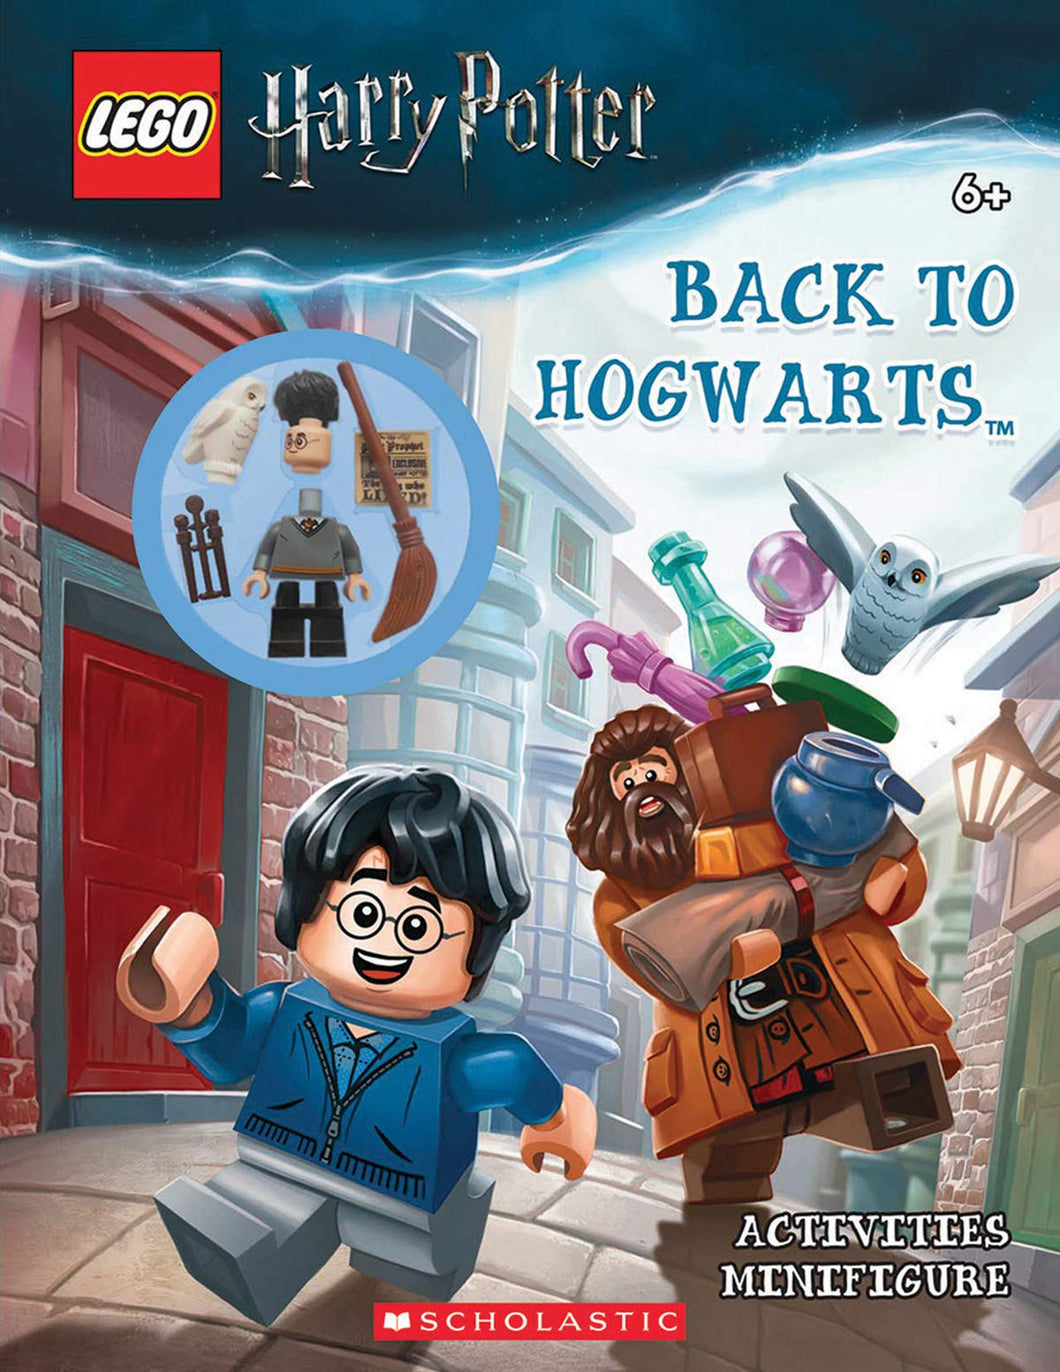 LEGO® Harry Potter: Back to Hogwarts (Activity Book with Minifigure)